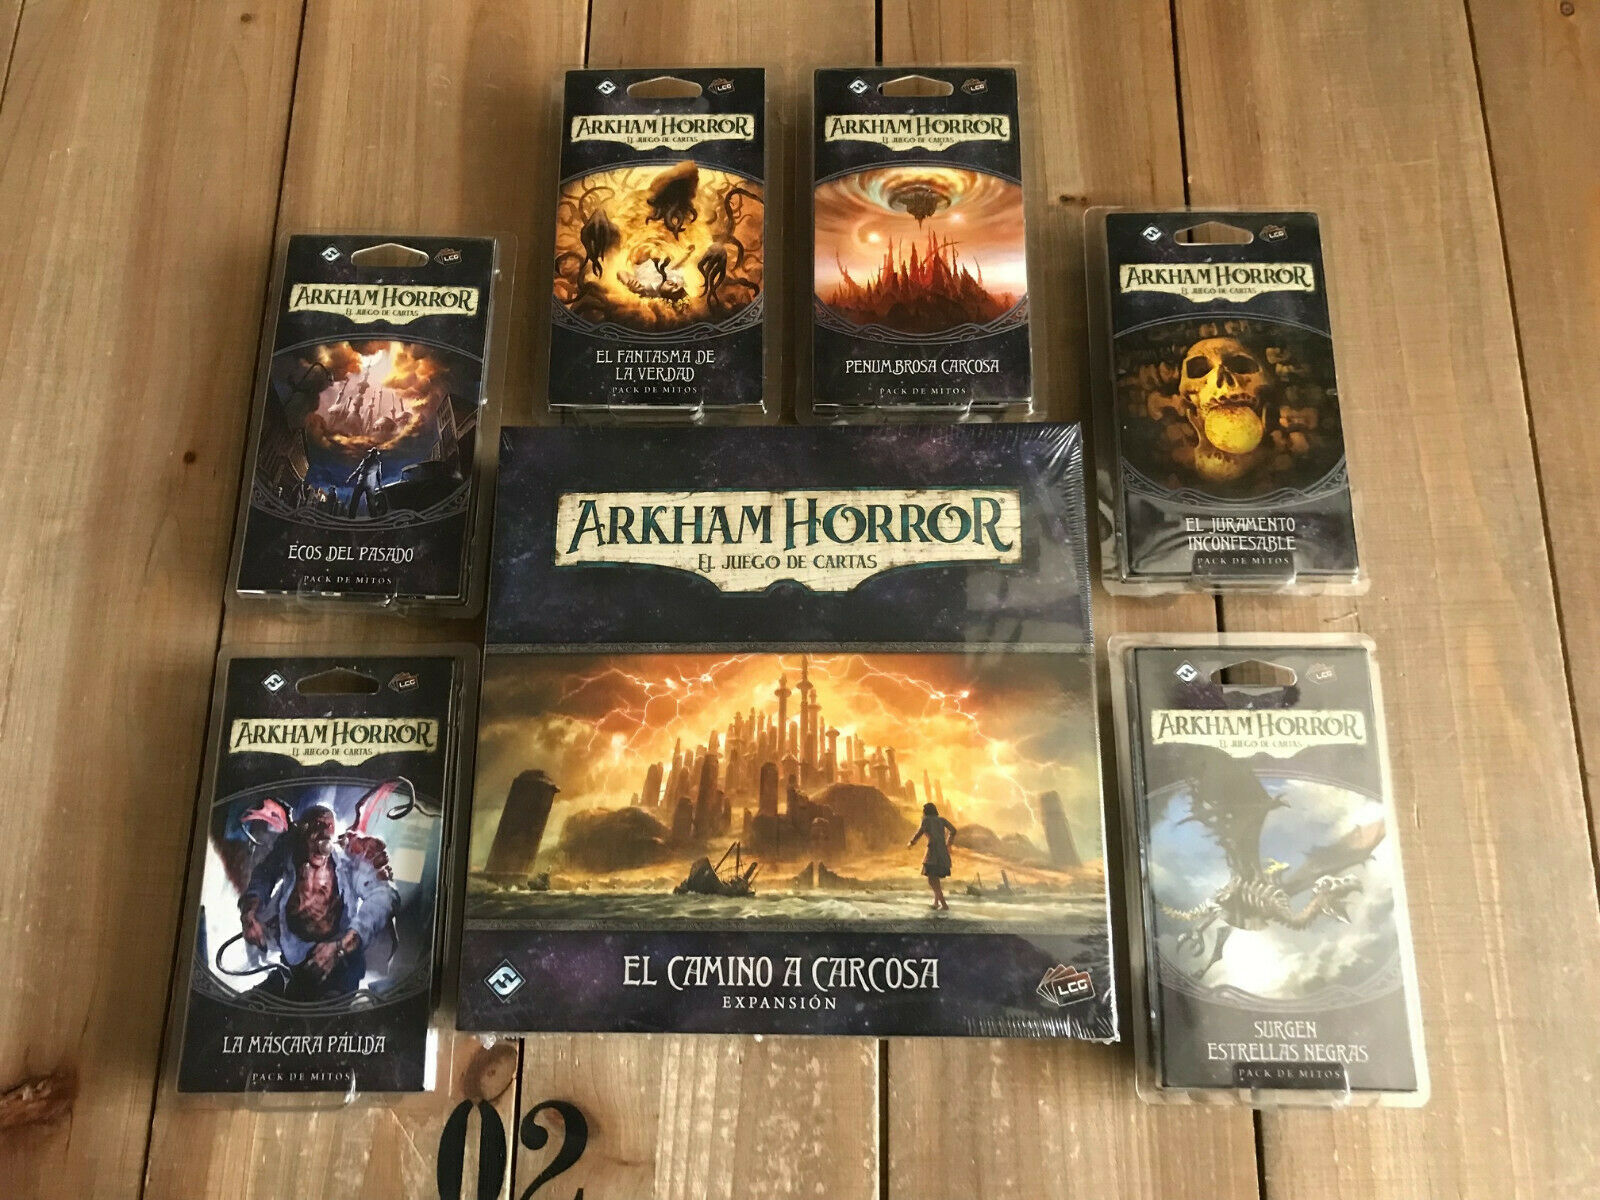 Arkham Horror  El Game Letters - El Road to Carcosa Cycle Complete - Ffg